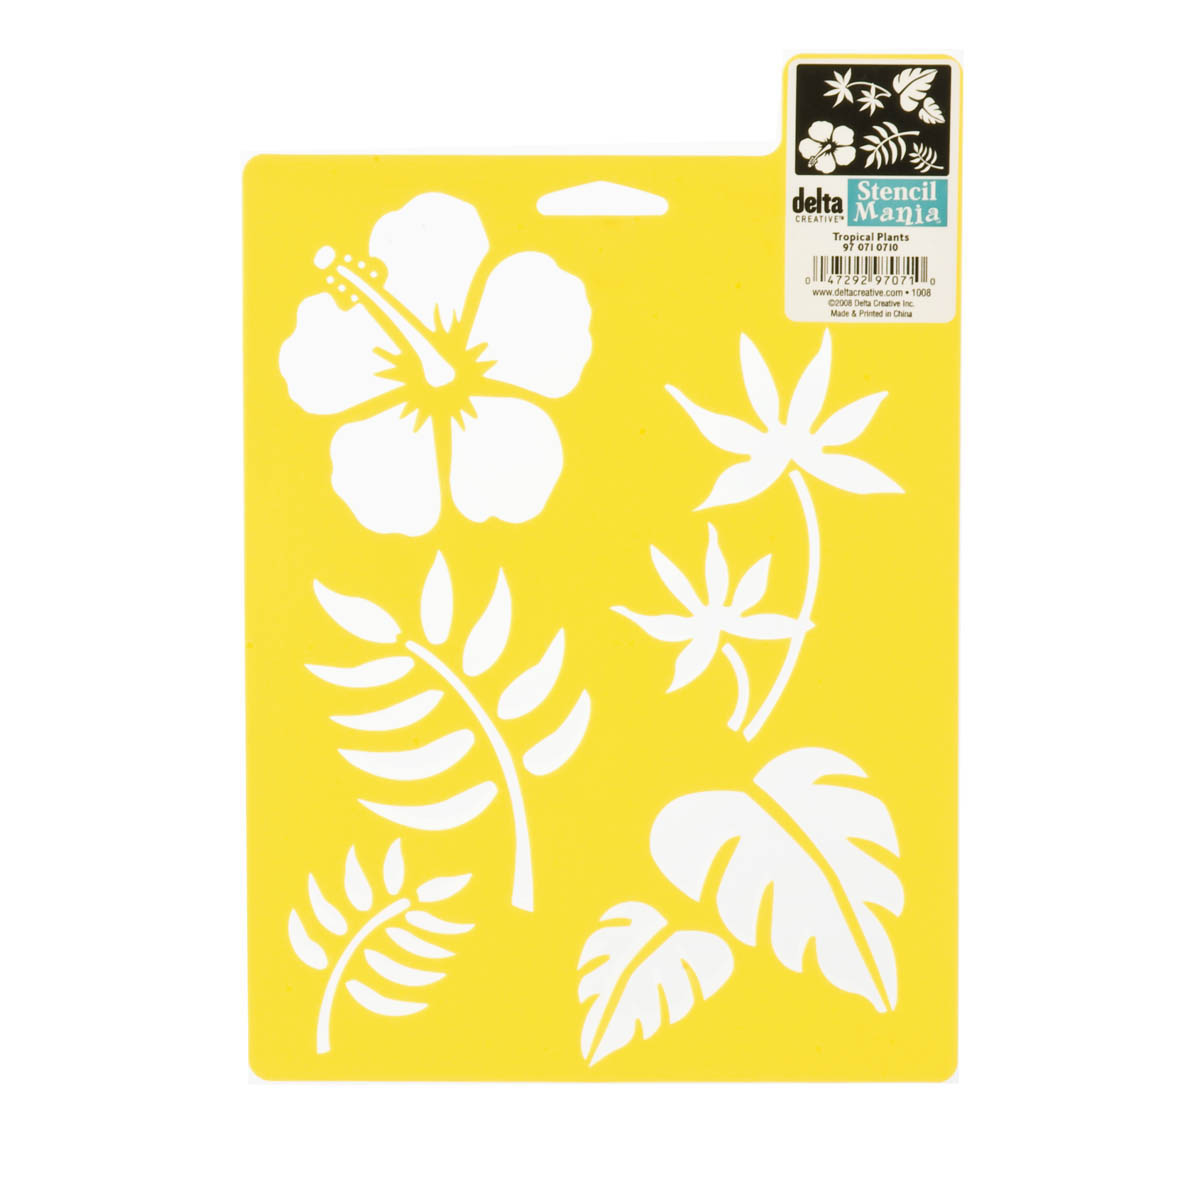 Delta Stencil Mania™ - Tropical Plants